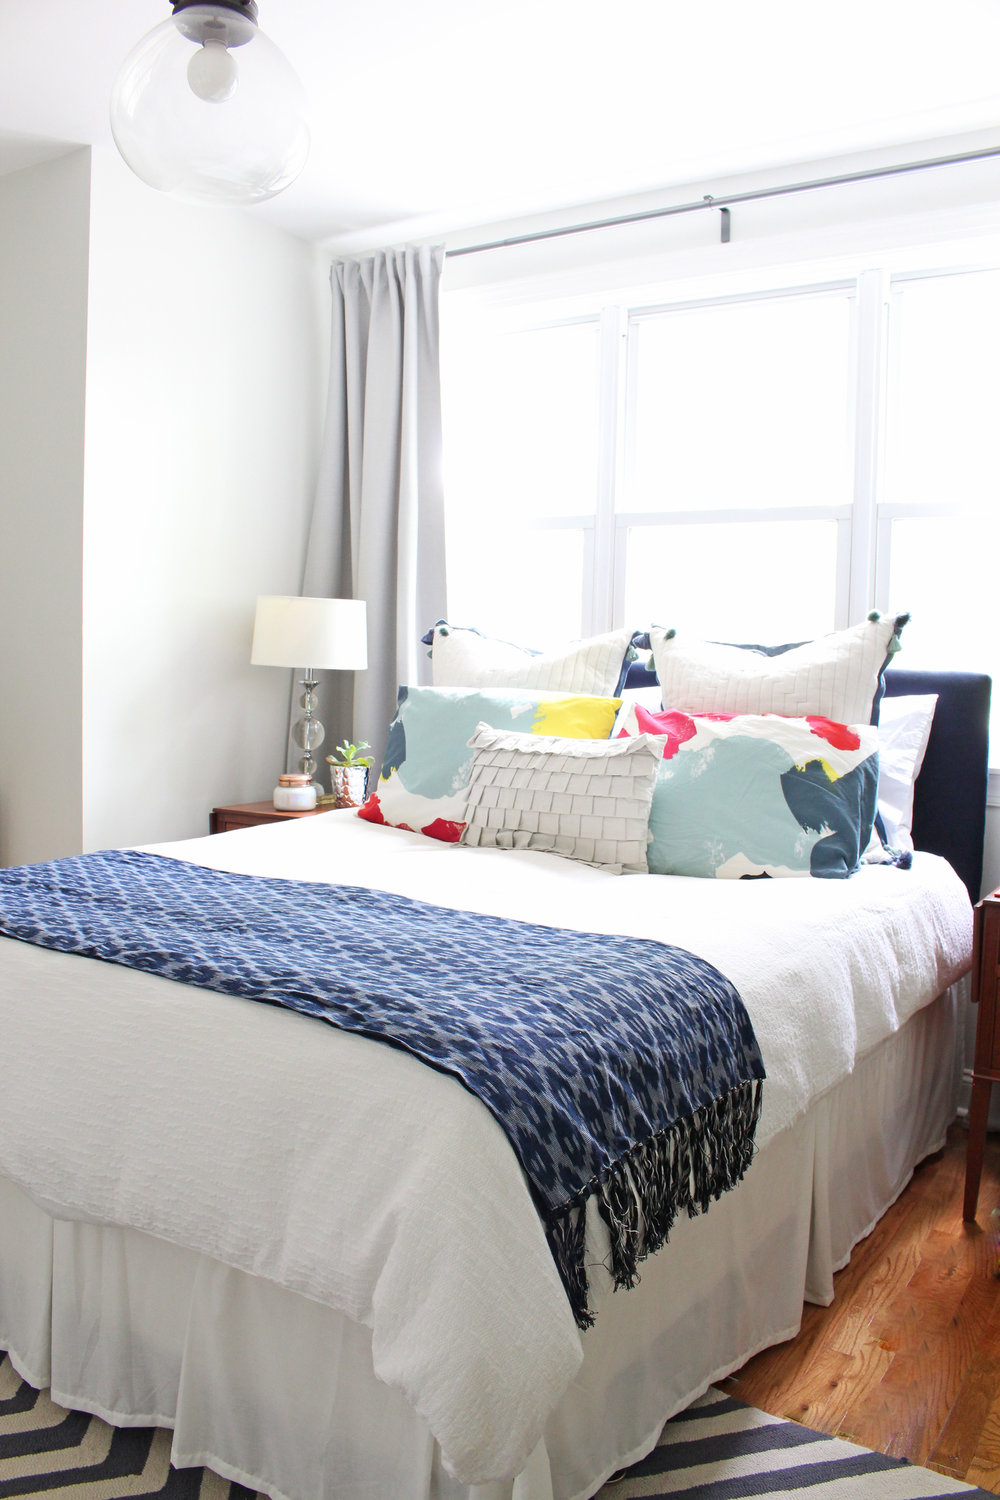 Yes, you can put beds in front of windows! This post tells you how you can pull it off well in your bedroom.